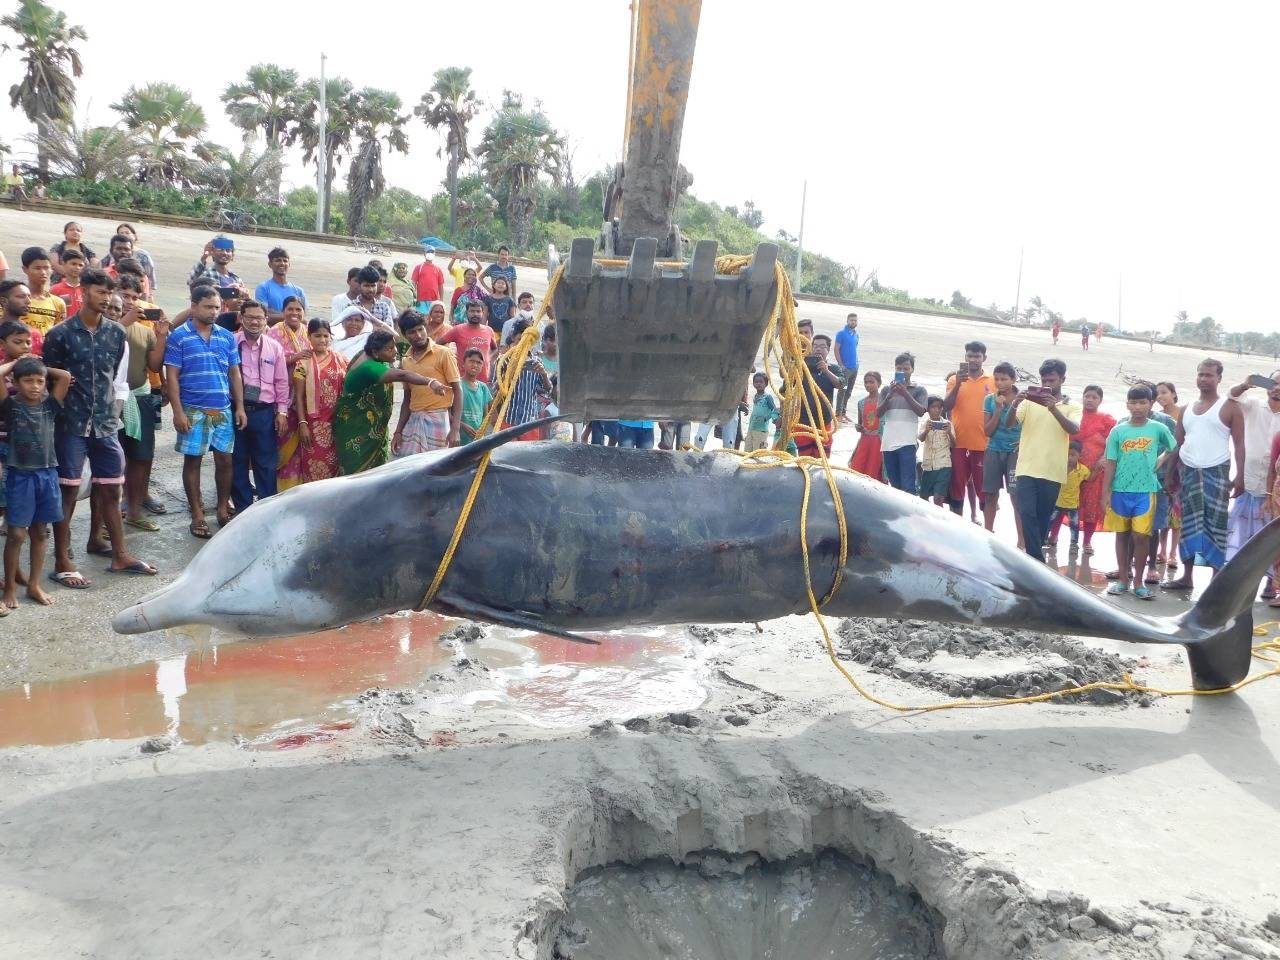 In pics: 5.3-metre-long whale washed onto Bengal beach